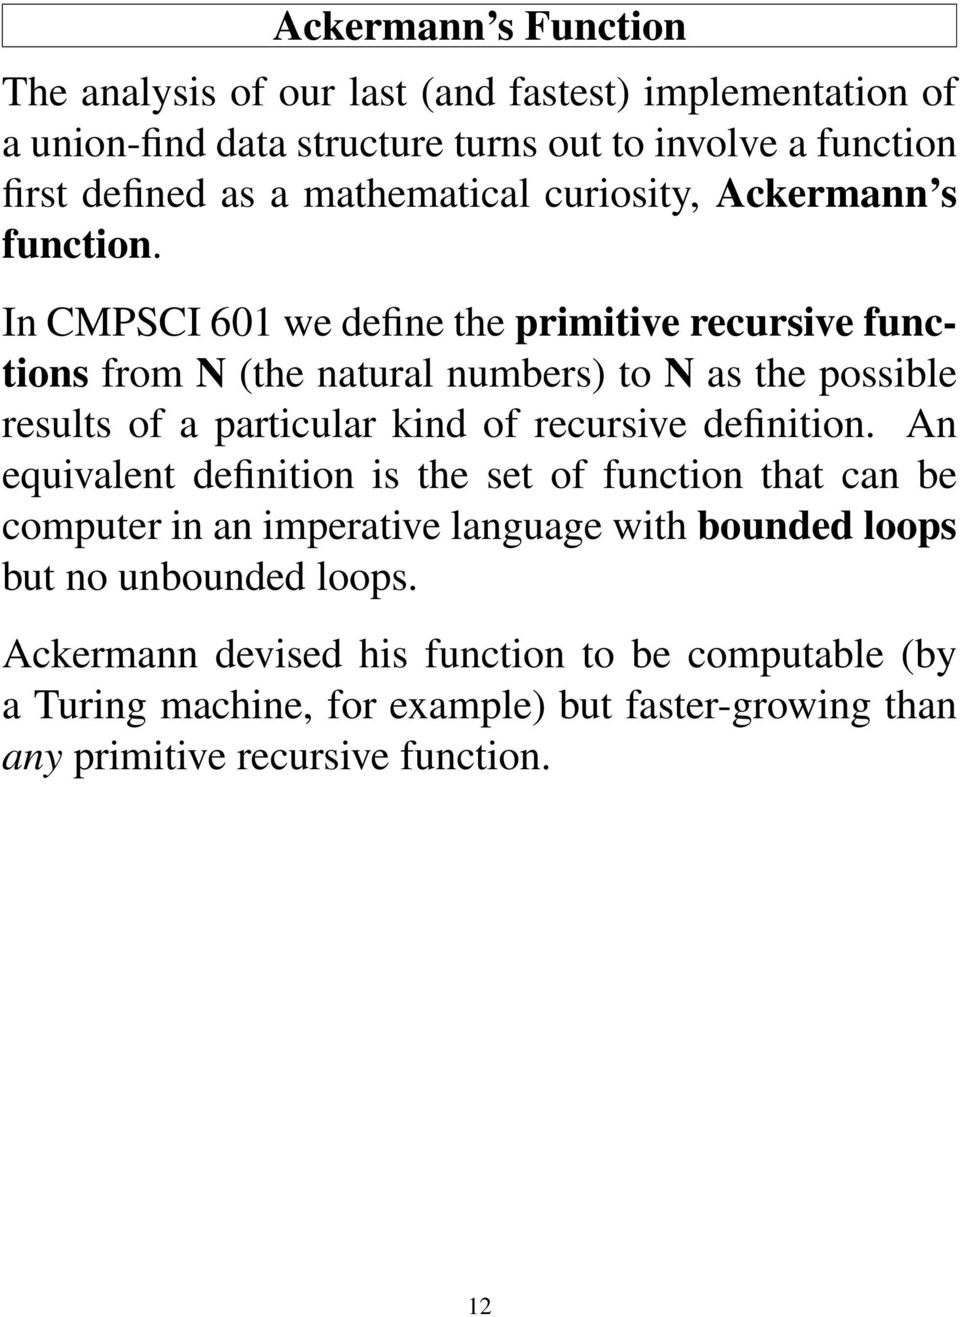 In CMPSCI 601 we define the primitive recursive functions from N (the natural numbers) to N as the possible results of a particular kind of recursive definition.